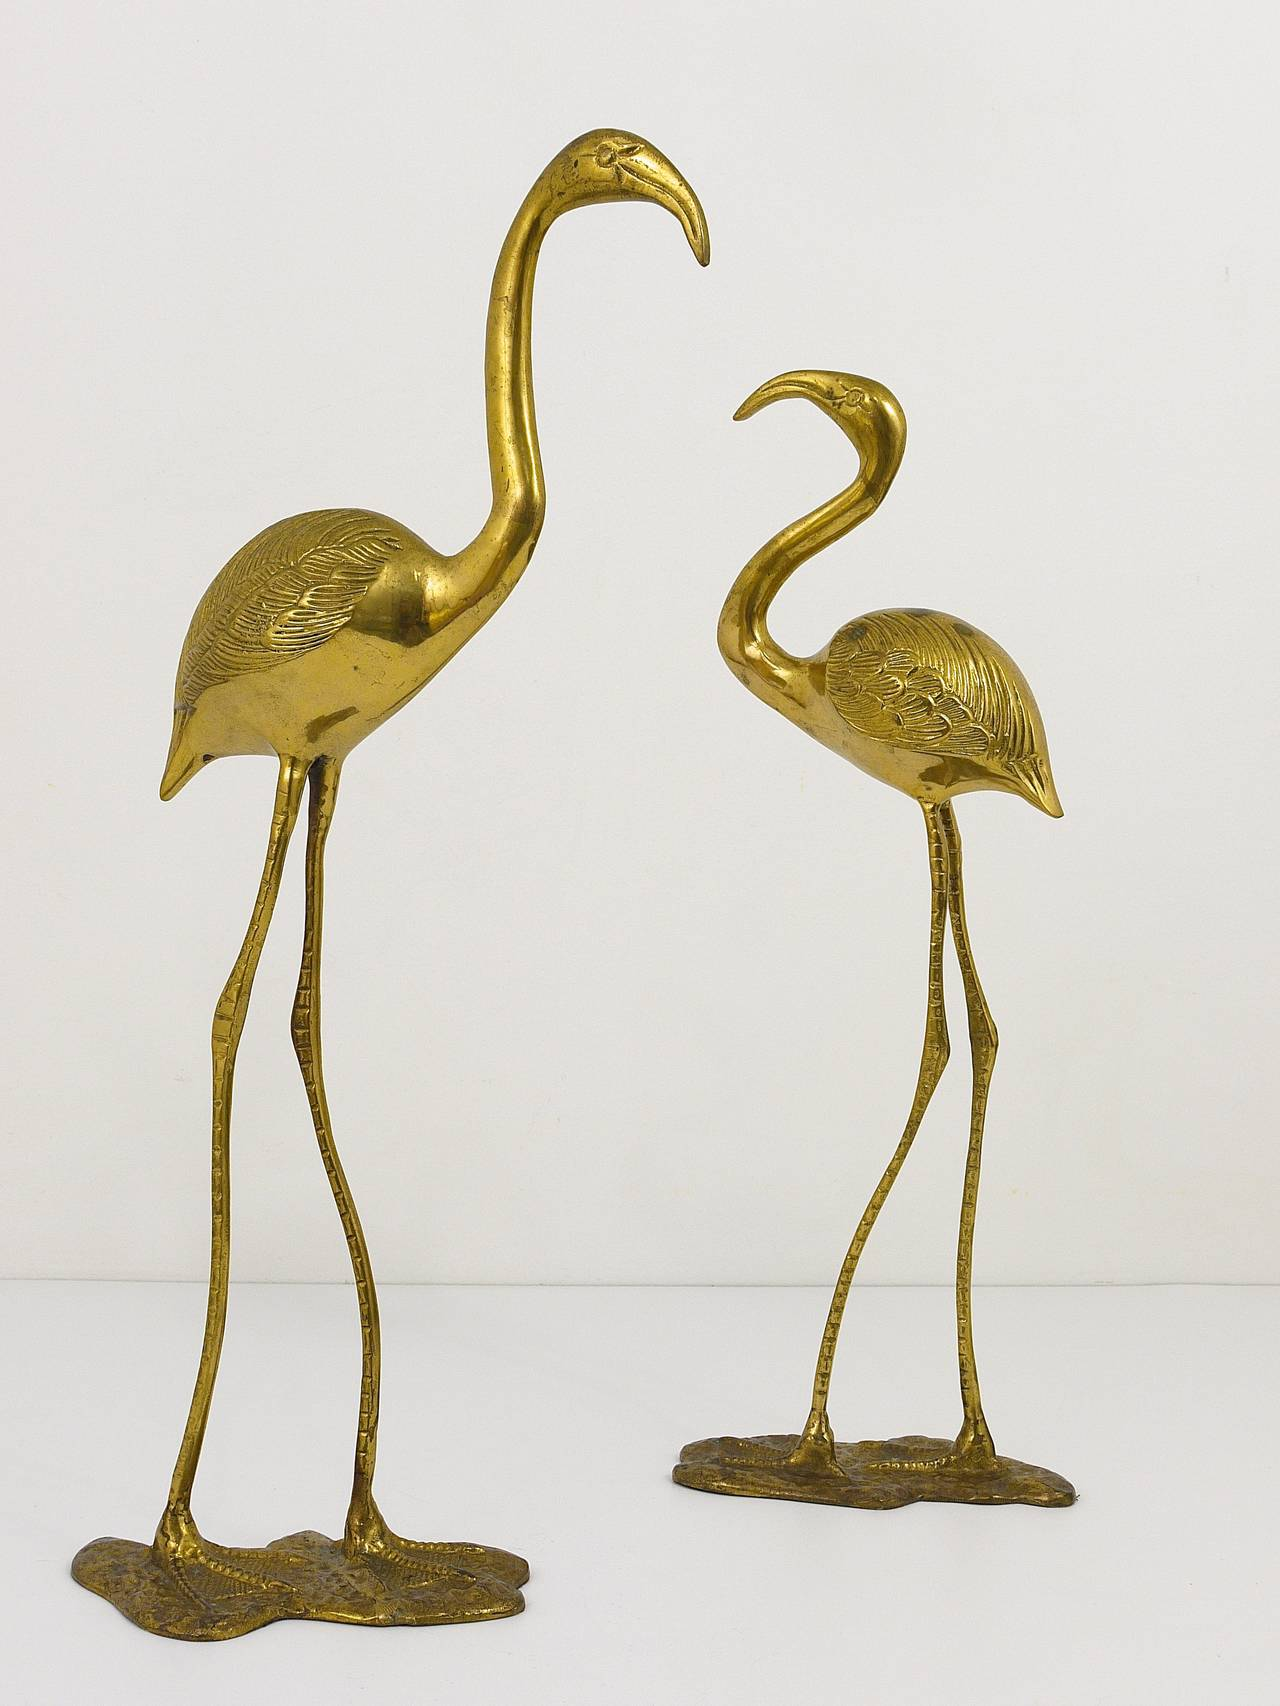 A Beautiful Pair Of French Brass Flamingo Sculptures, 1970s, France 3